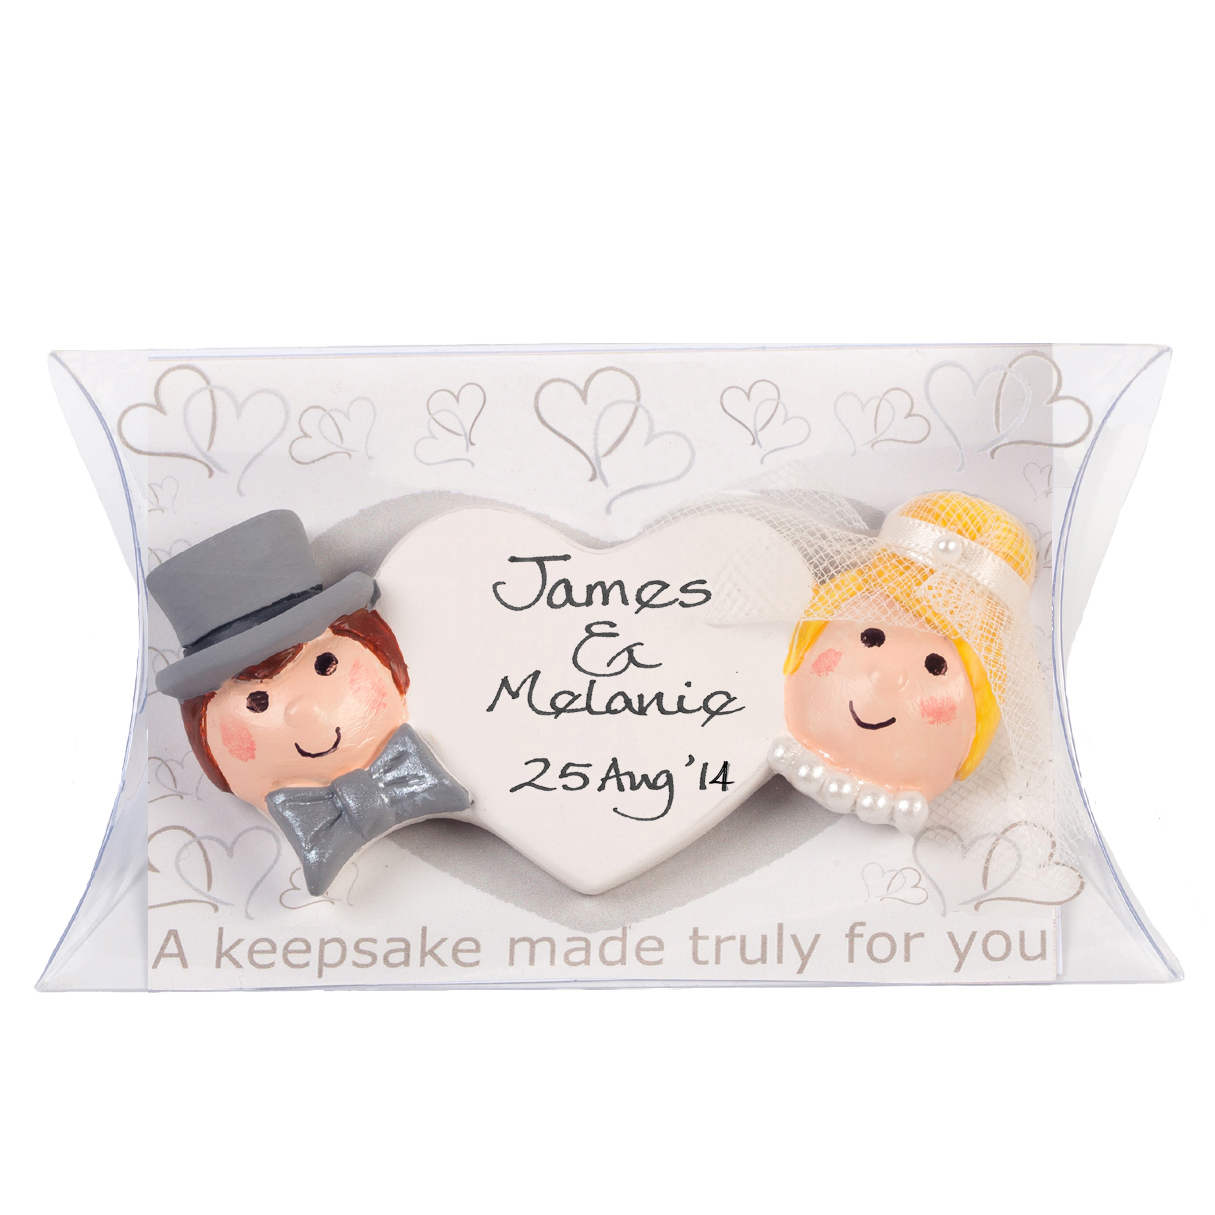 Joint Wedding Gifts For Parents : Personalised Wedding Bride and Groom Keepsake